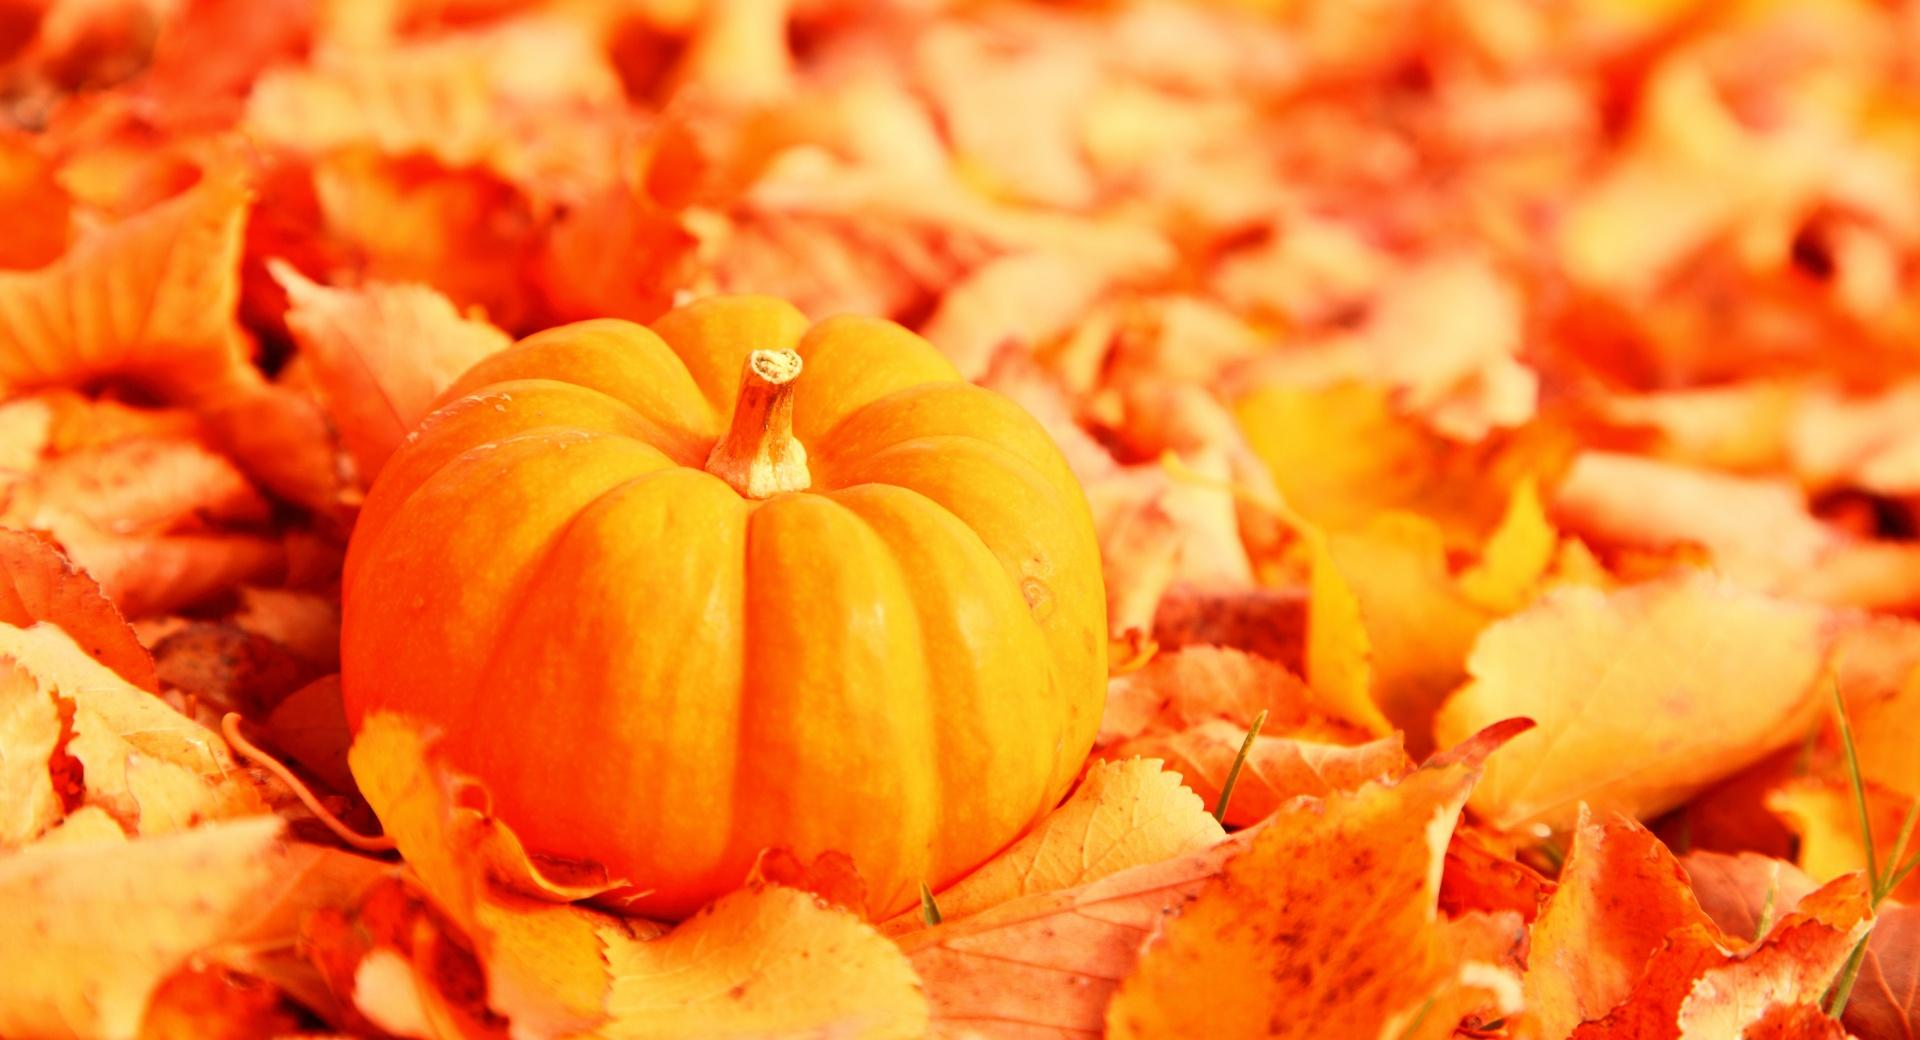 Pumpkin And Autumn Leaves wallpapers HD quality